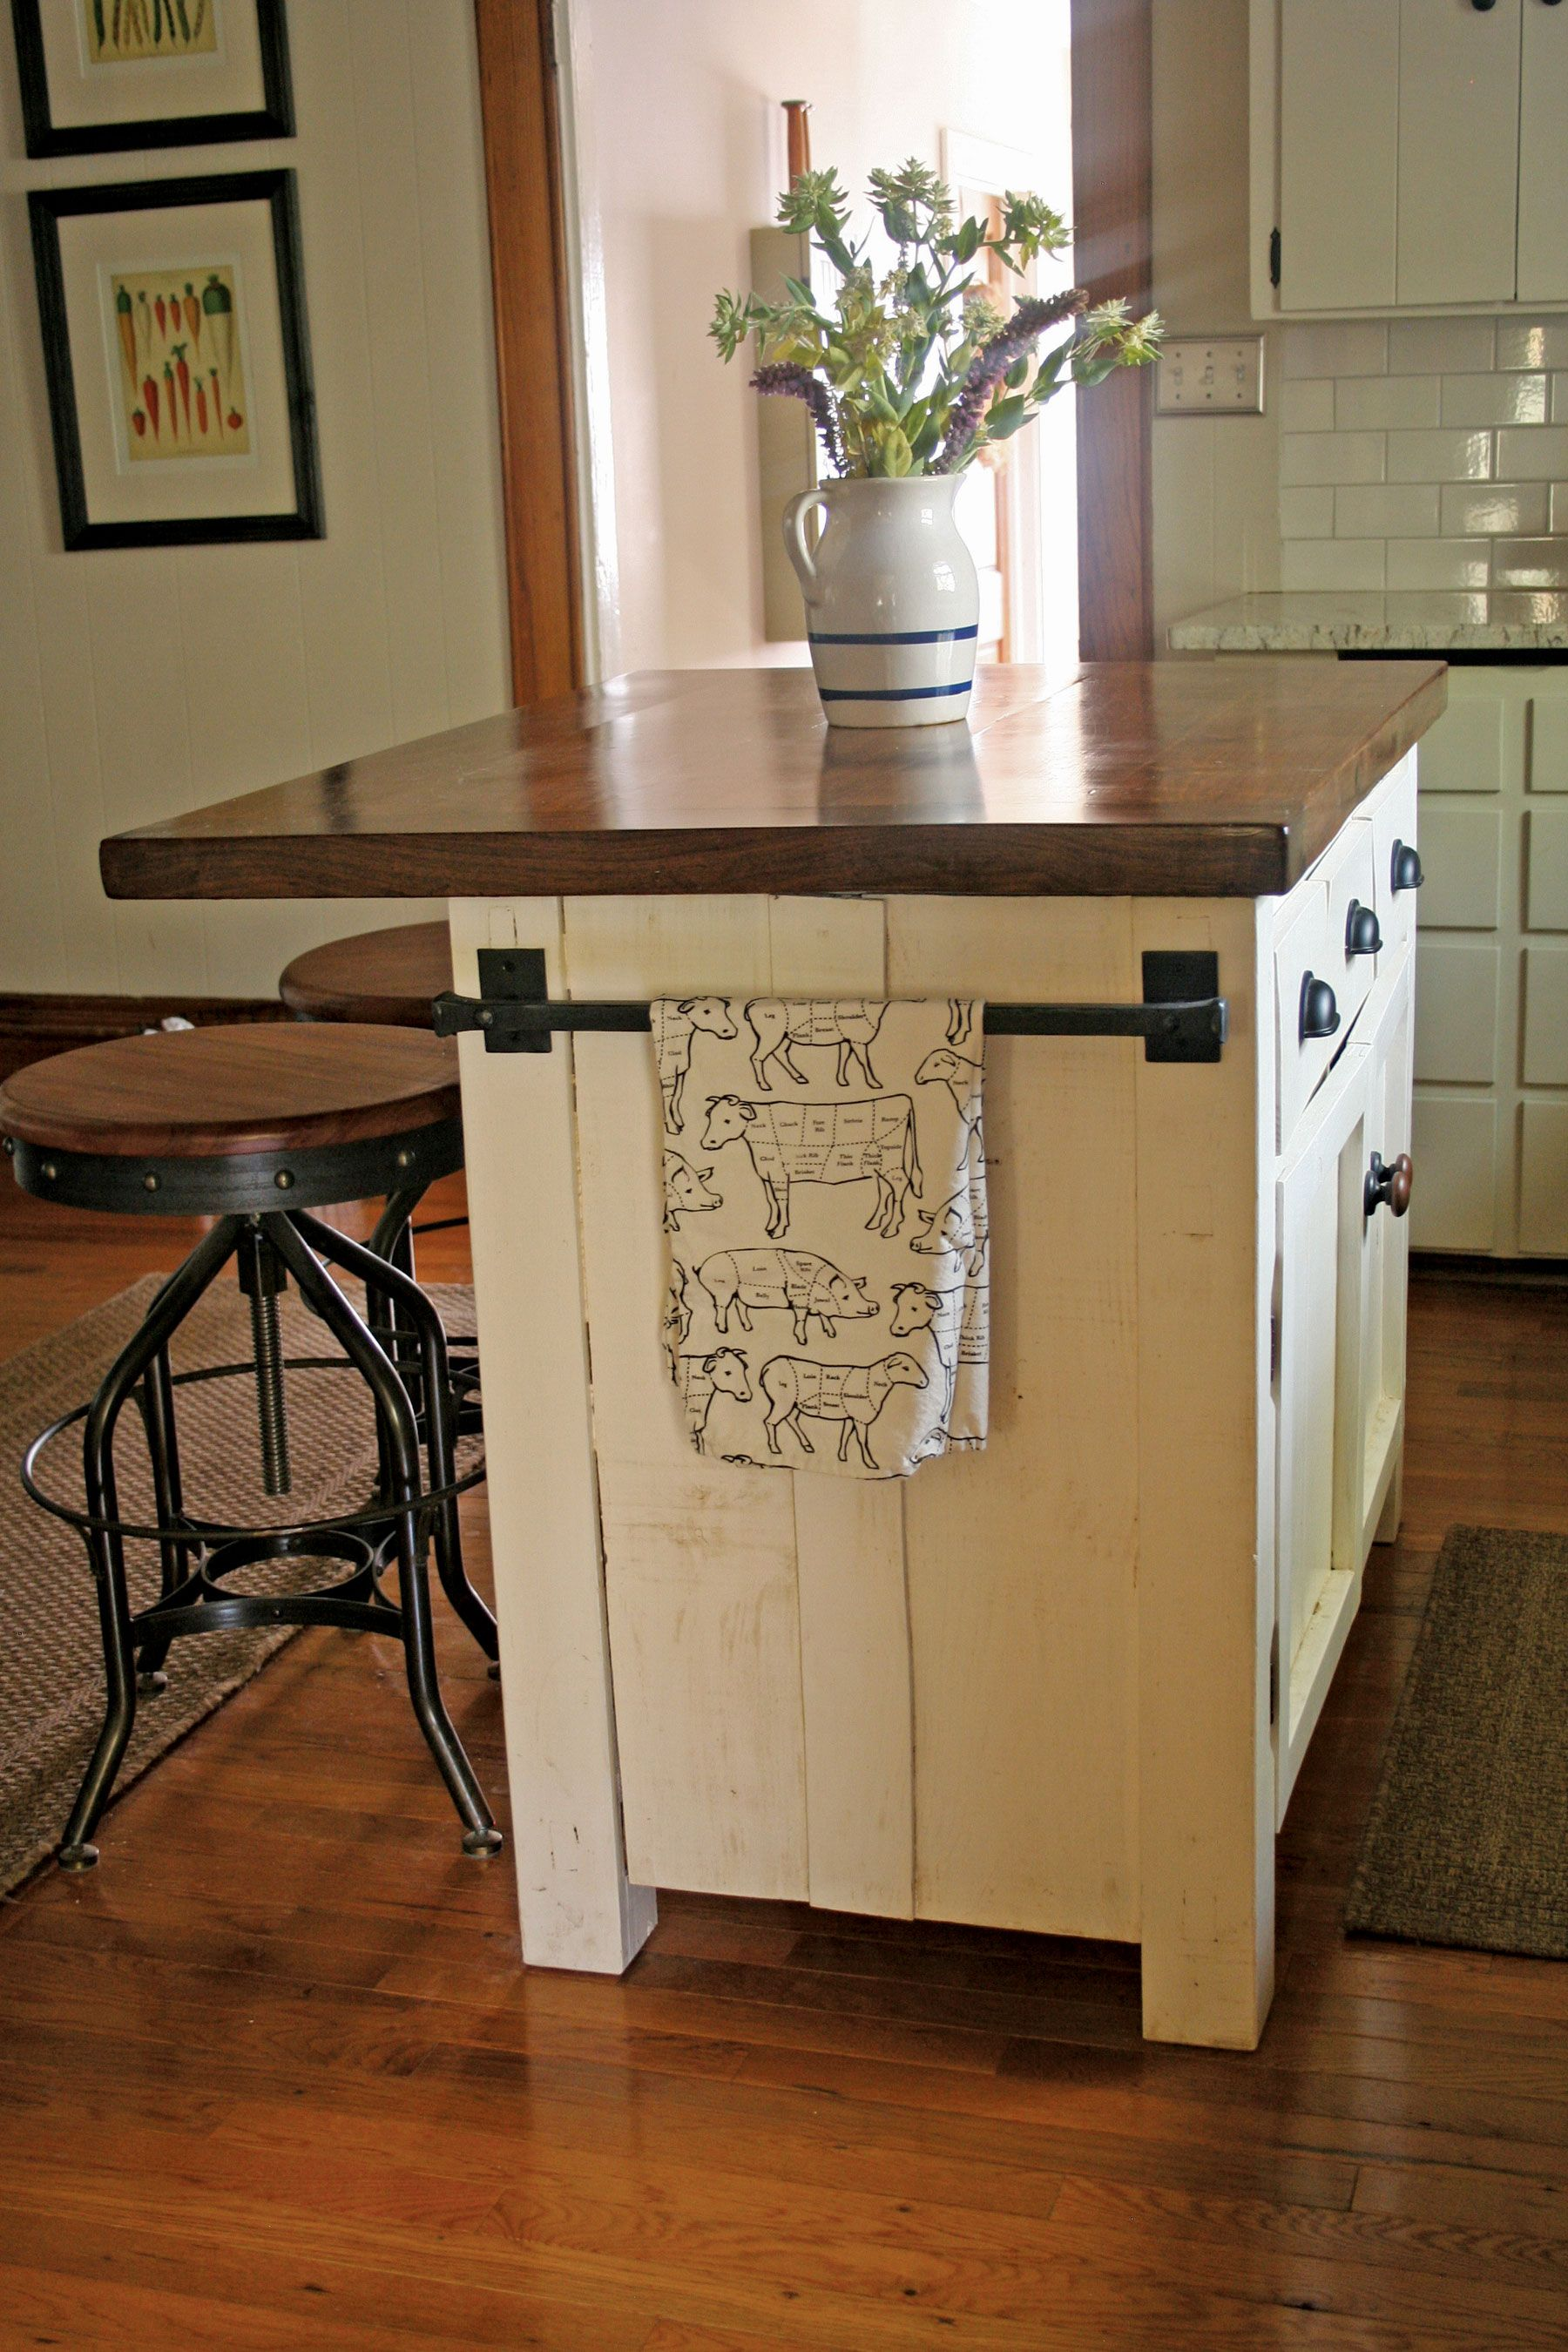 15 Little Clever Ideas To Improve Your Kitchen 5 Crafting On